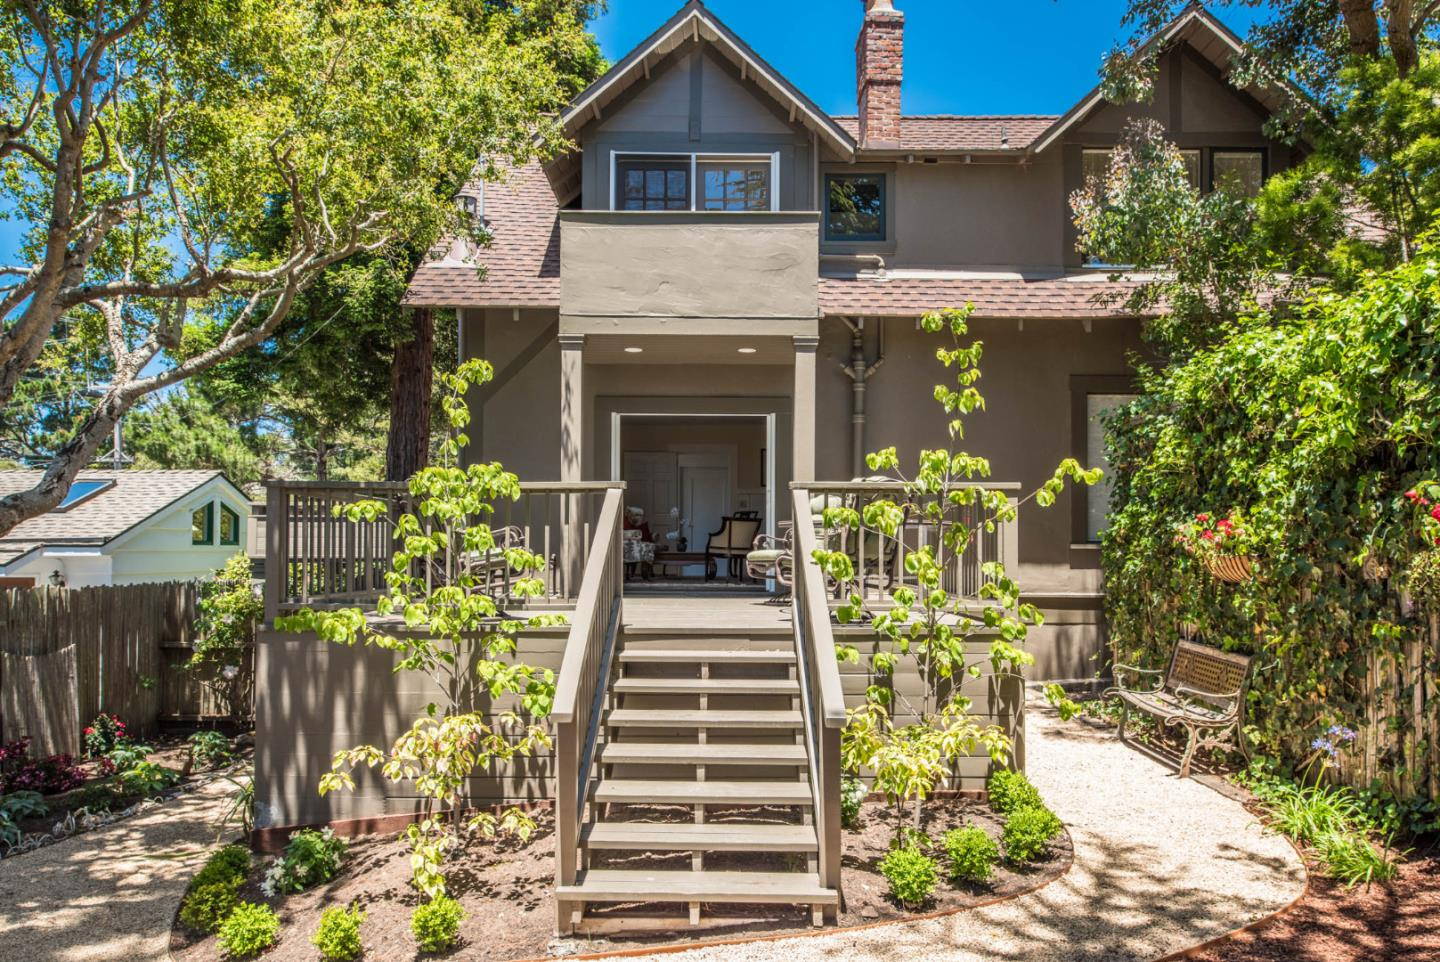 Single Family Home for Sale at 8th Ave. 2SE of Monte Verde Carmel, California 93921 United States